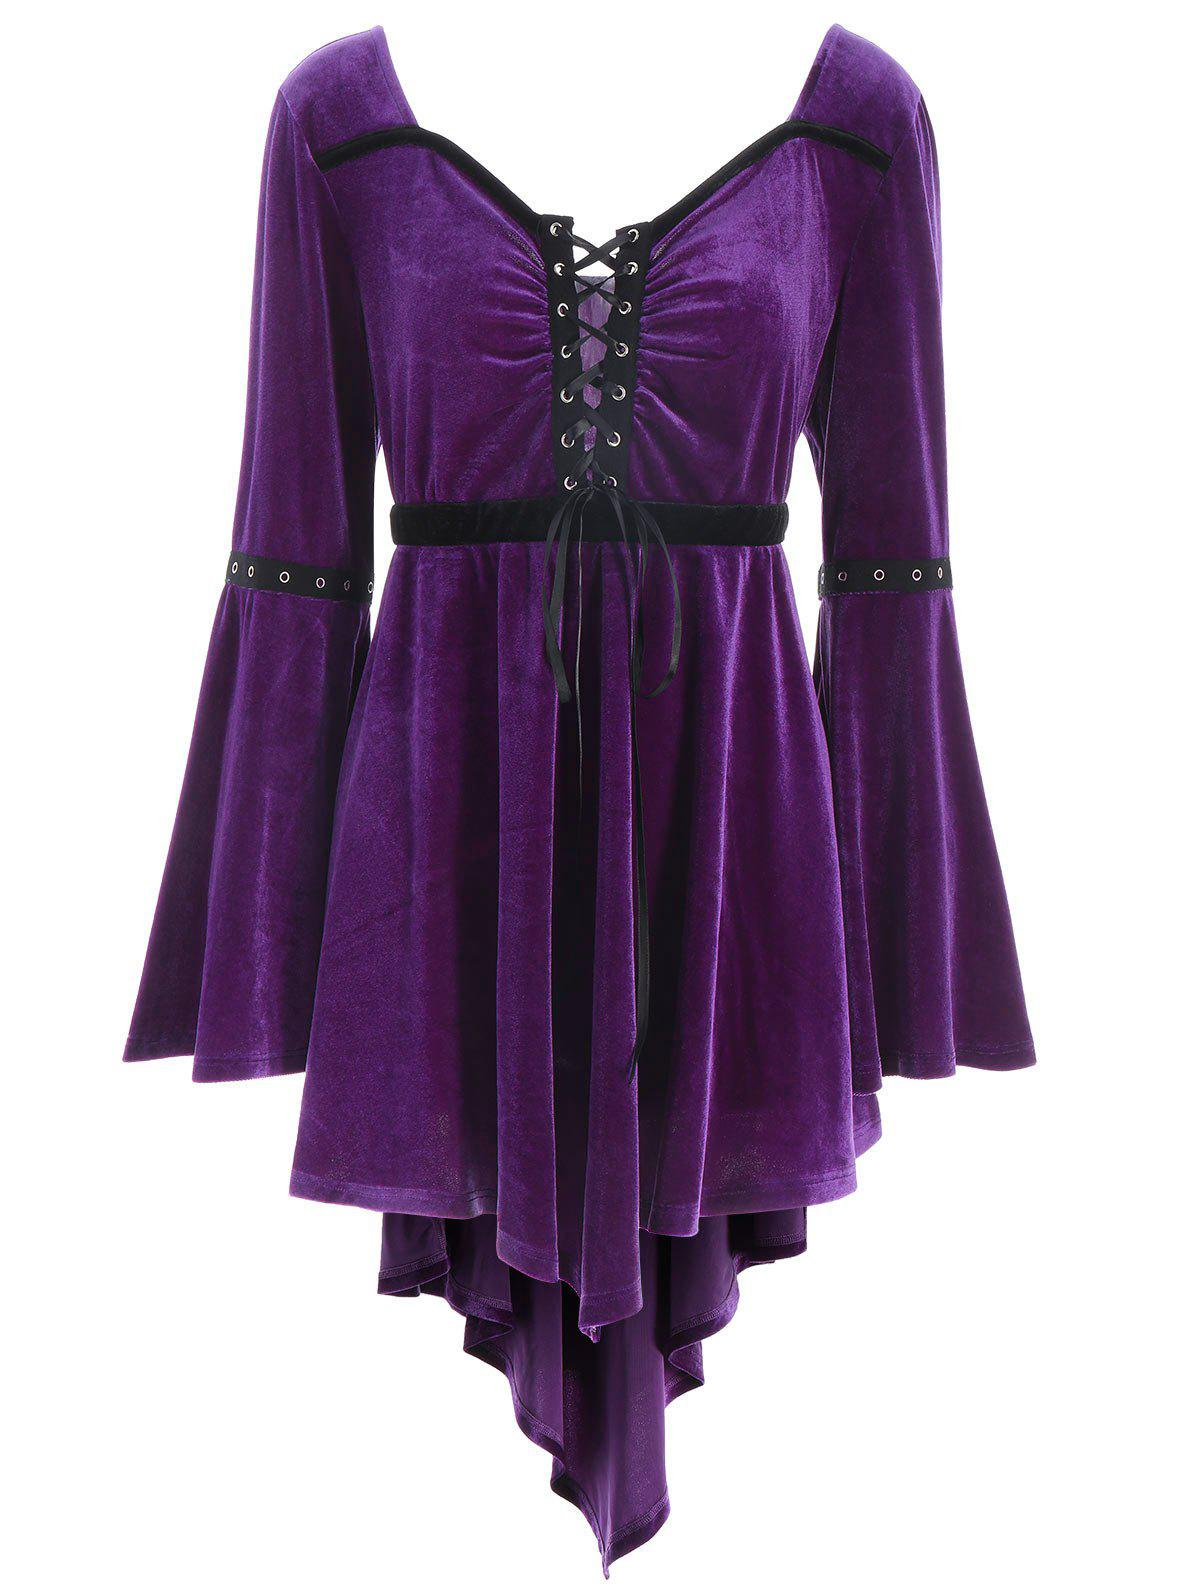 Plus Size Lace Up High Low Velvet T-shirtWOMEN<br><br>Size: 5XL; Color: PURPLE; Material: Cotton,Polyester; Shirt Length: Long; Sleeve Length: Full; Collar: Sweetheart Neck; Style: Fashion; Season: Fall; Sleeve Type: Flare Sleeve; Embellishment: Criss-Cross; Pattern Type: Solid; Weight: 0.4000kg; Package Contents: 1 x T-shirt;